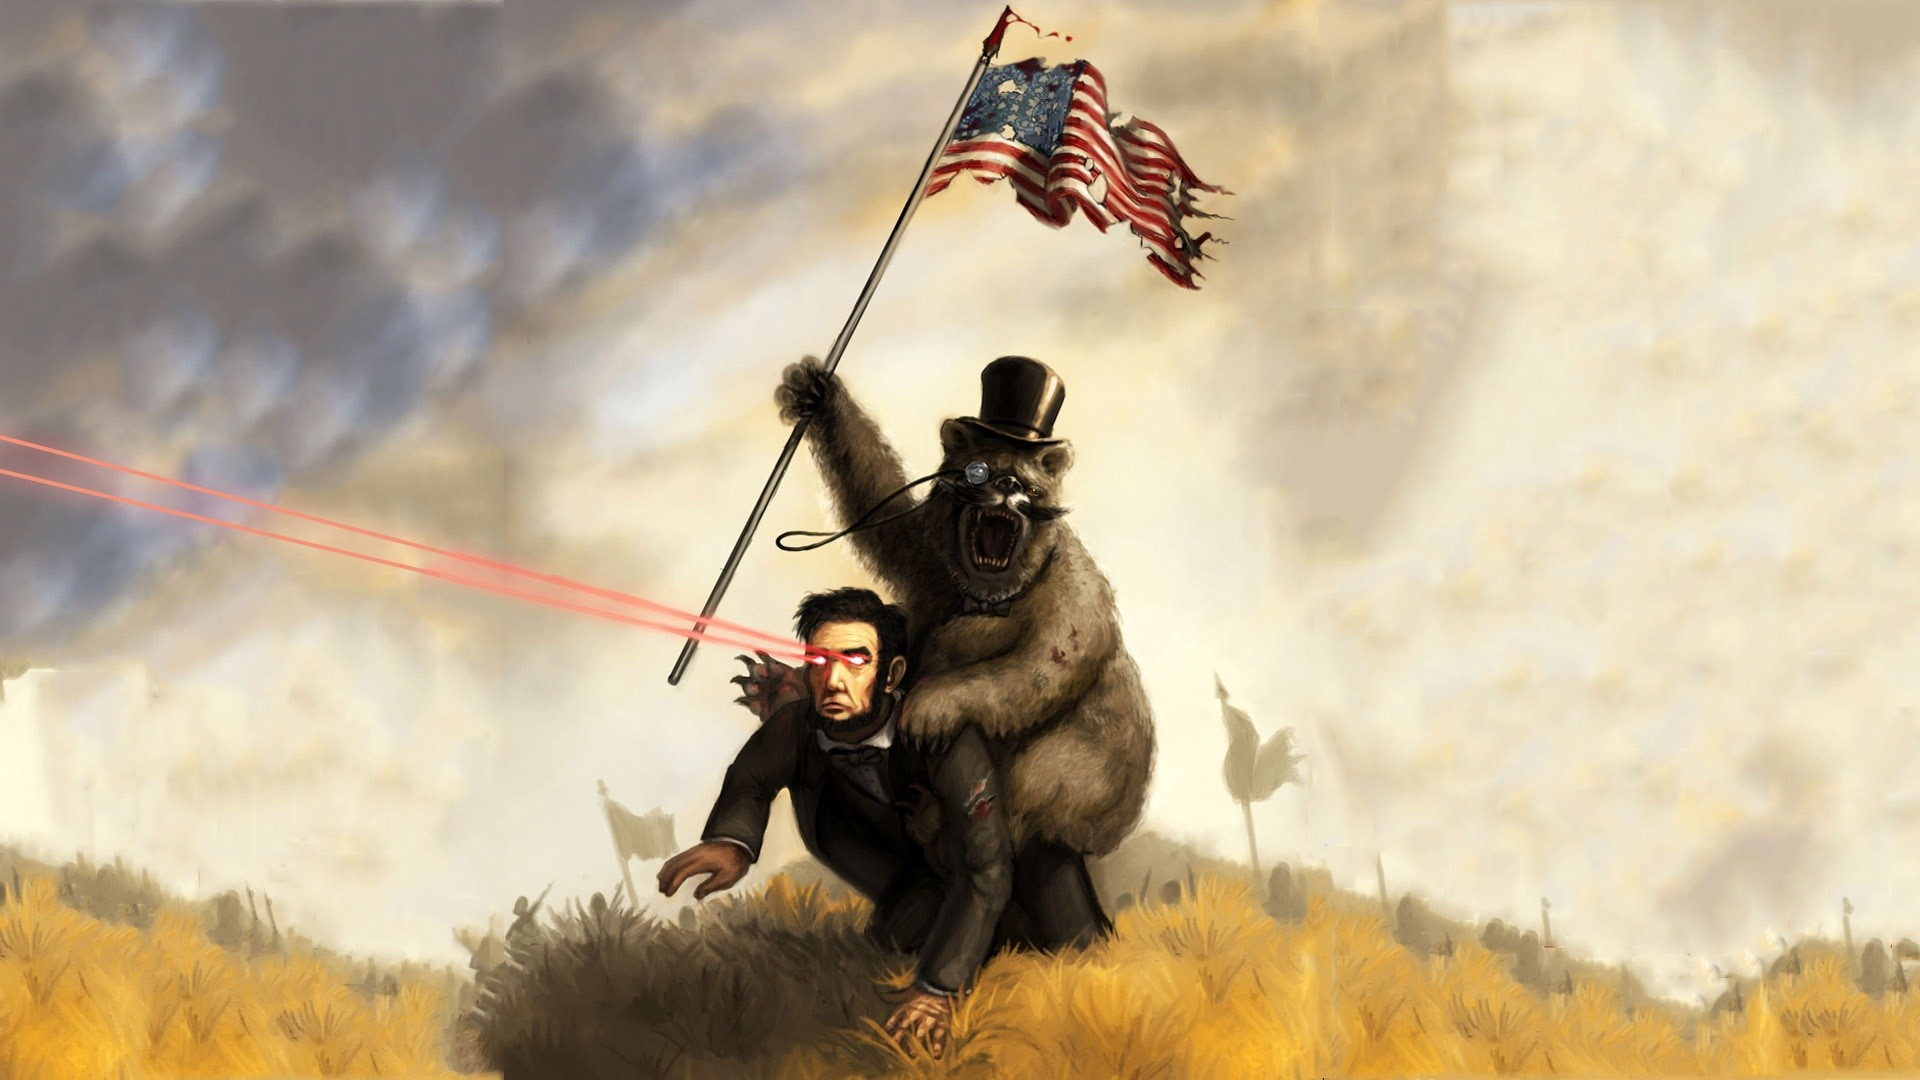 Abraham Lincoln being rode by the infamous anti-slavery bear